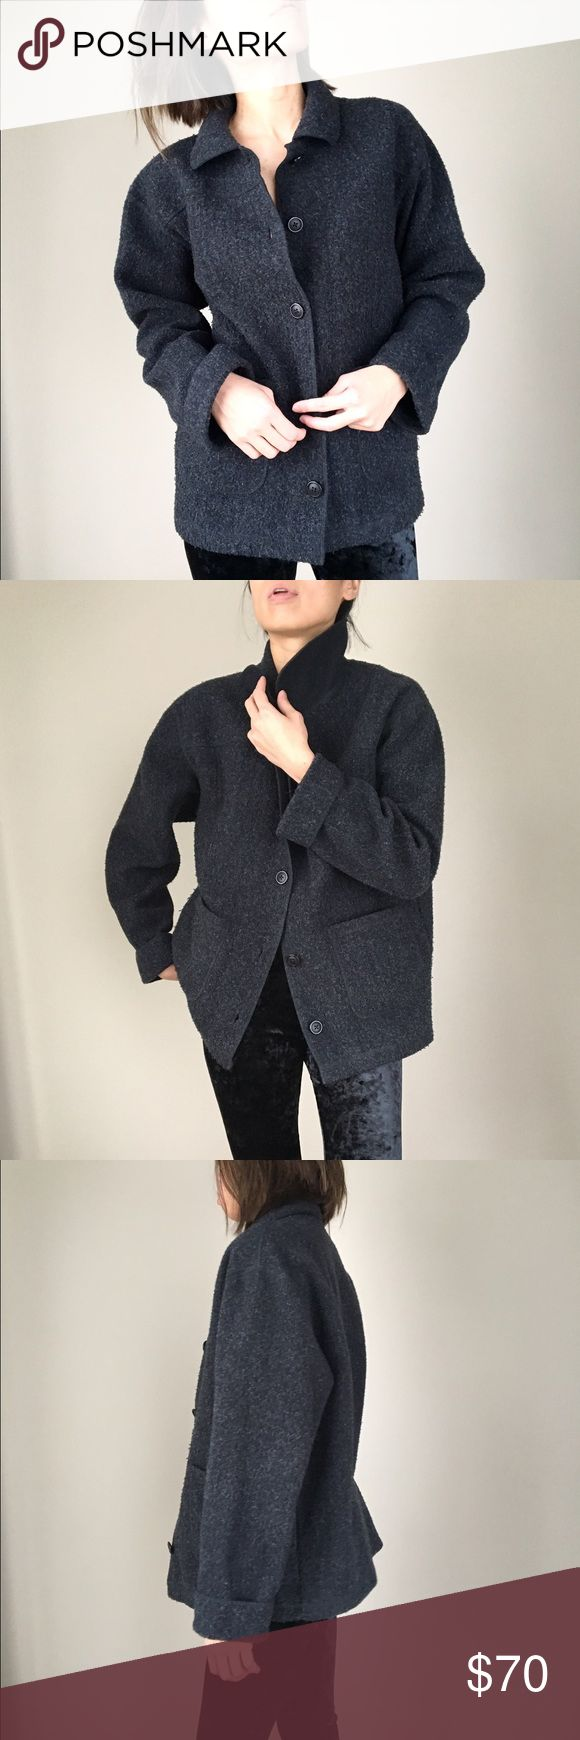 """Eddie Bauer Luxe charcoal black outerwear coat Eddie Bauer button down outerwear coat for everyday cold wear. Goes wth any daily wear .60%acrylic 40%polyester. Size S: shoulder 19"""", bust 22""""length 26.5. Front pockets . Fold sleeve. Good condition .oversize look Eddie Bauer Jackets & Coats Trench Coats"""